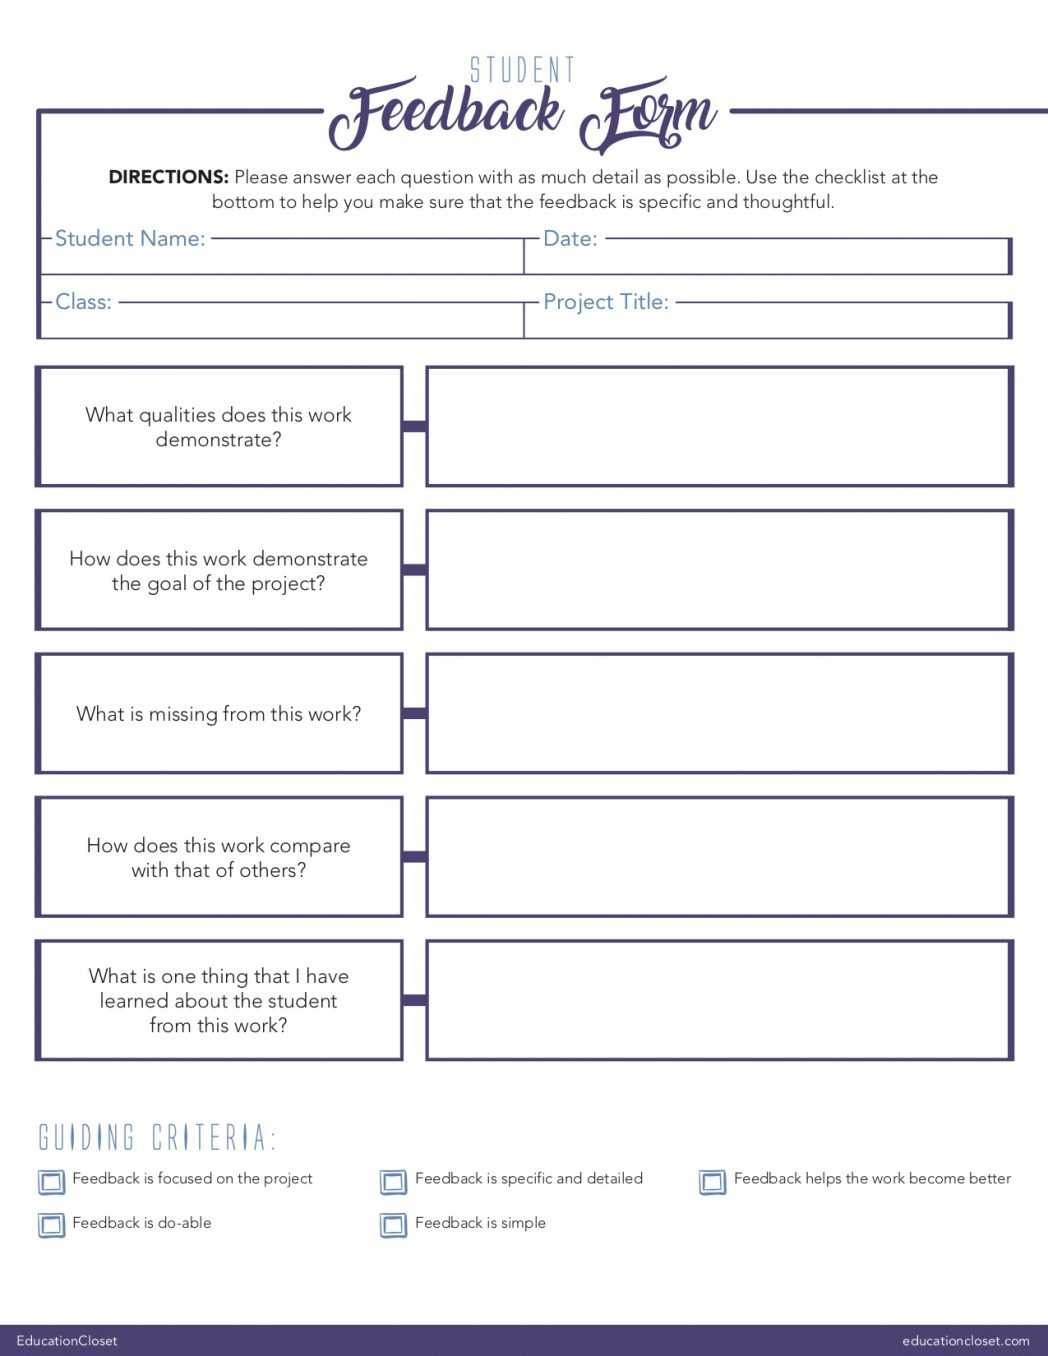 Php Intelligent Feedback Form In Html Previ | Adrienne Bailon With Student Feedback Form Template Word